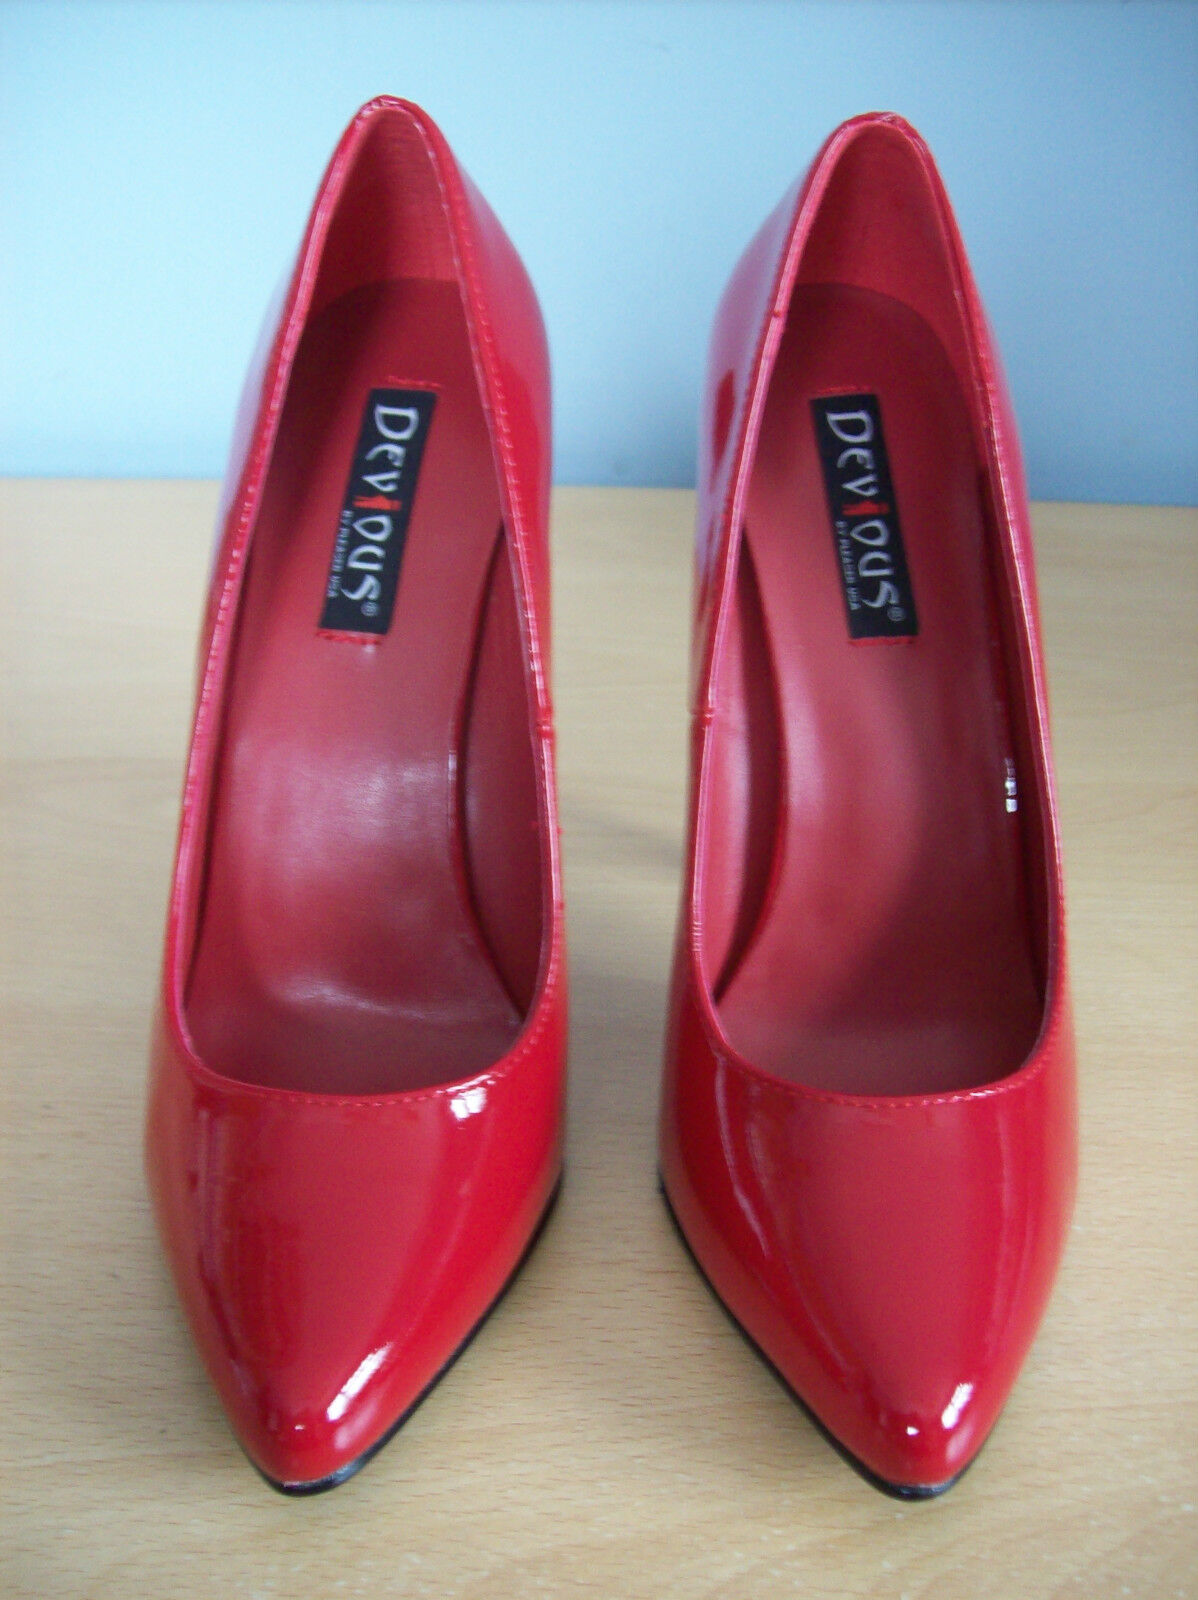 shoes Pleaser Pleaser Pleaser DOMINA 420 Very High Heel Stiletto Red UK Size 5 EUR Size 38 New a51b63